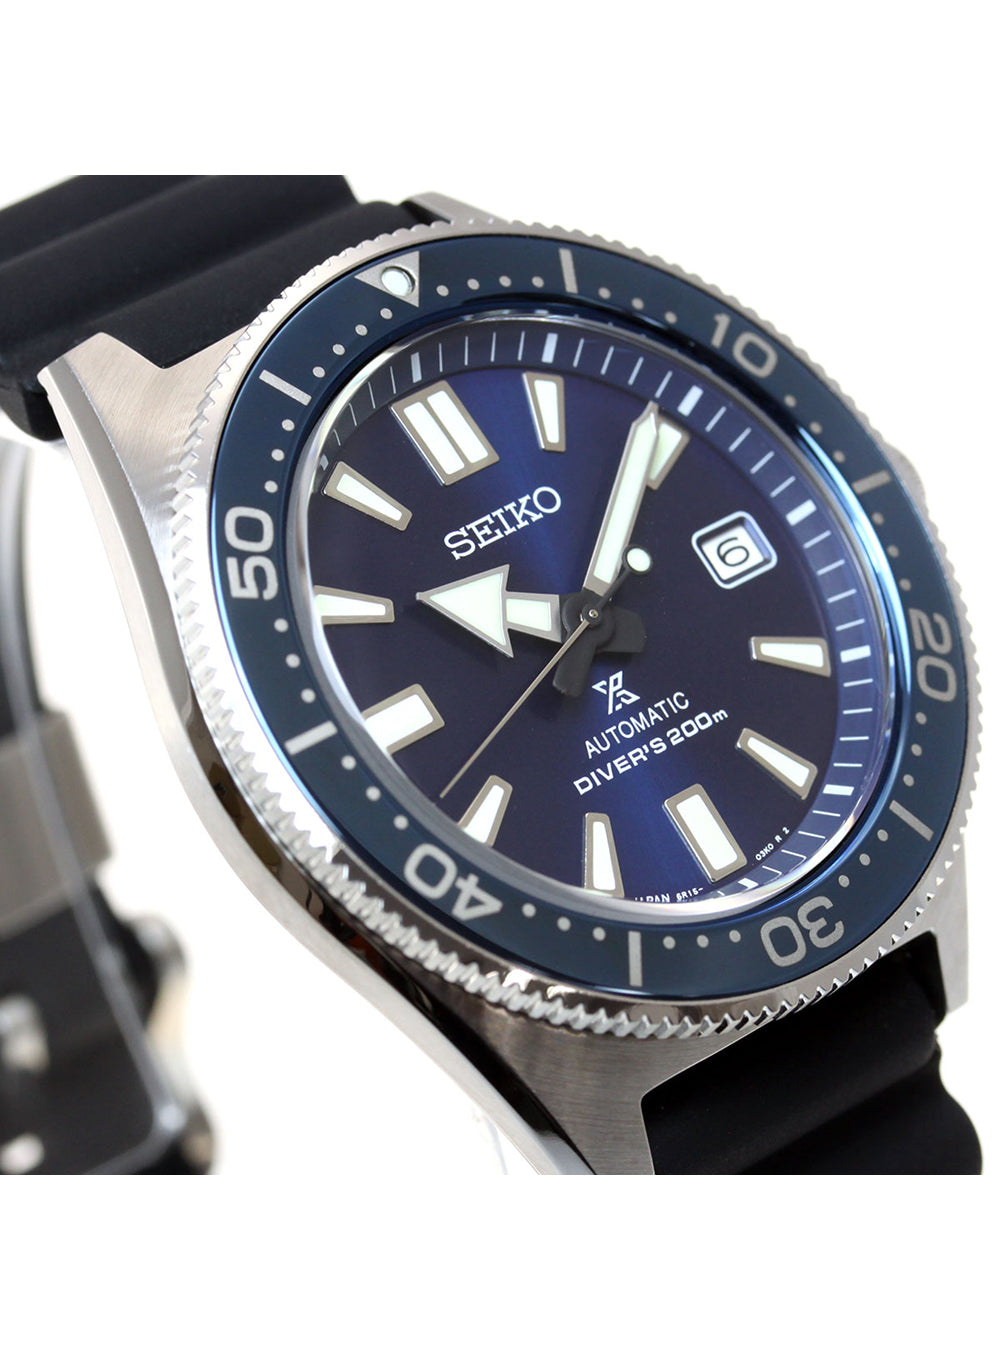 SEIKO PROSPEX 200M DIVER AUTOMATIC SBDC053 MADE IN JAPAN JDM (Japanese Domestic Market)